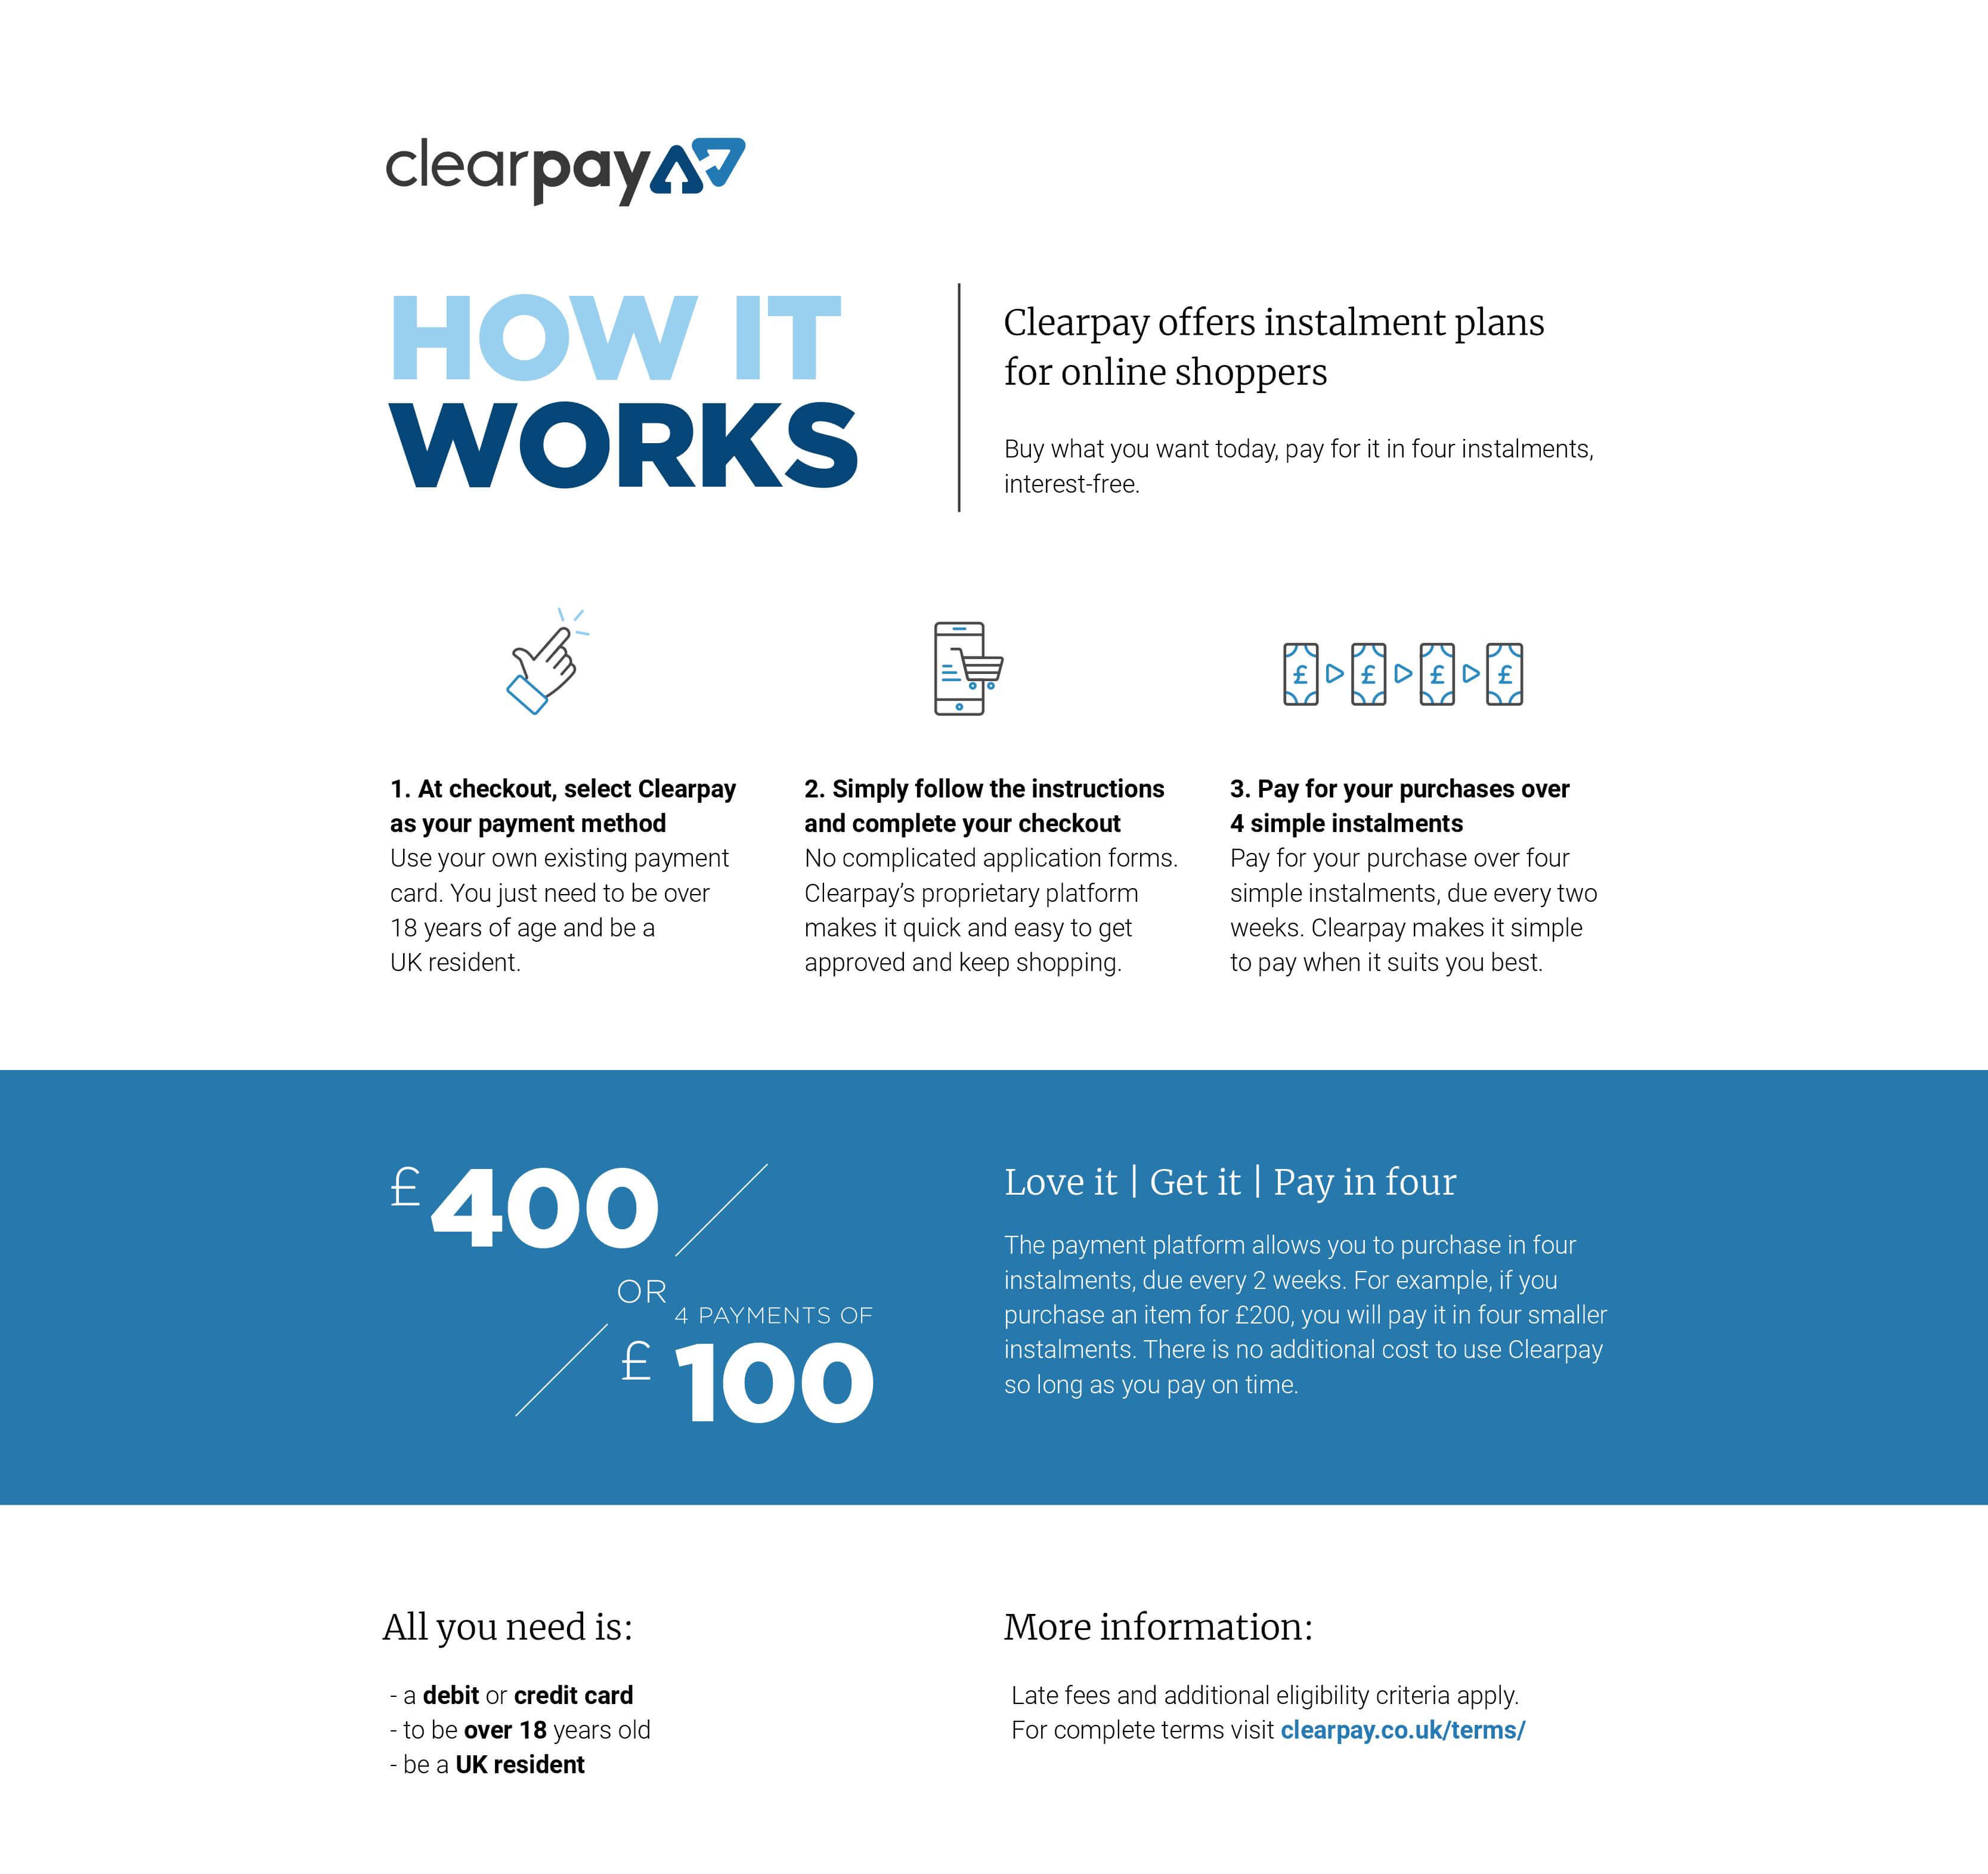 Clearpay how it works